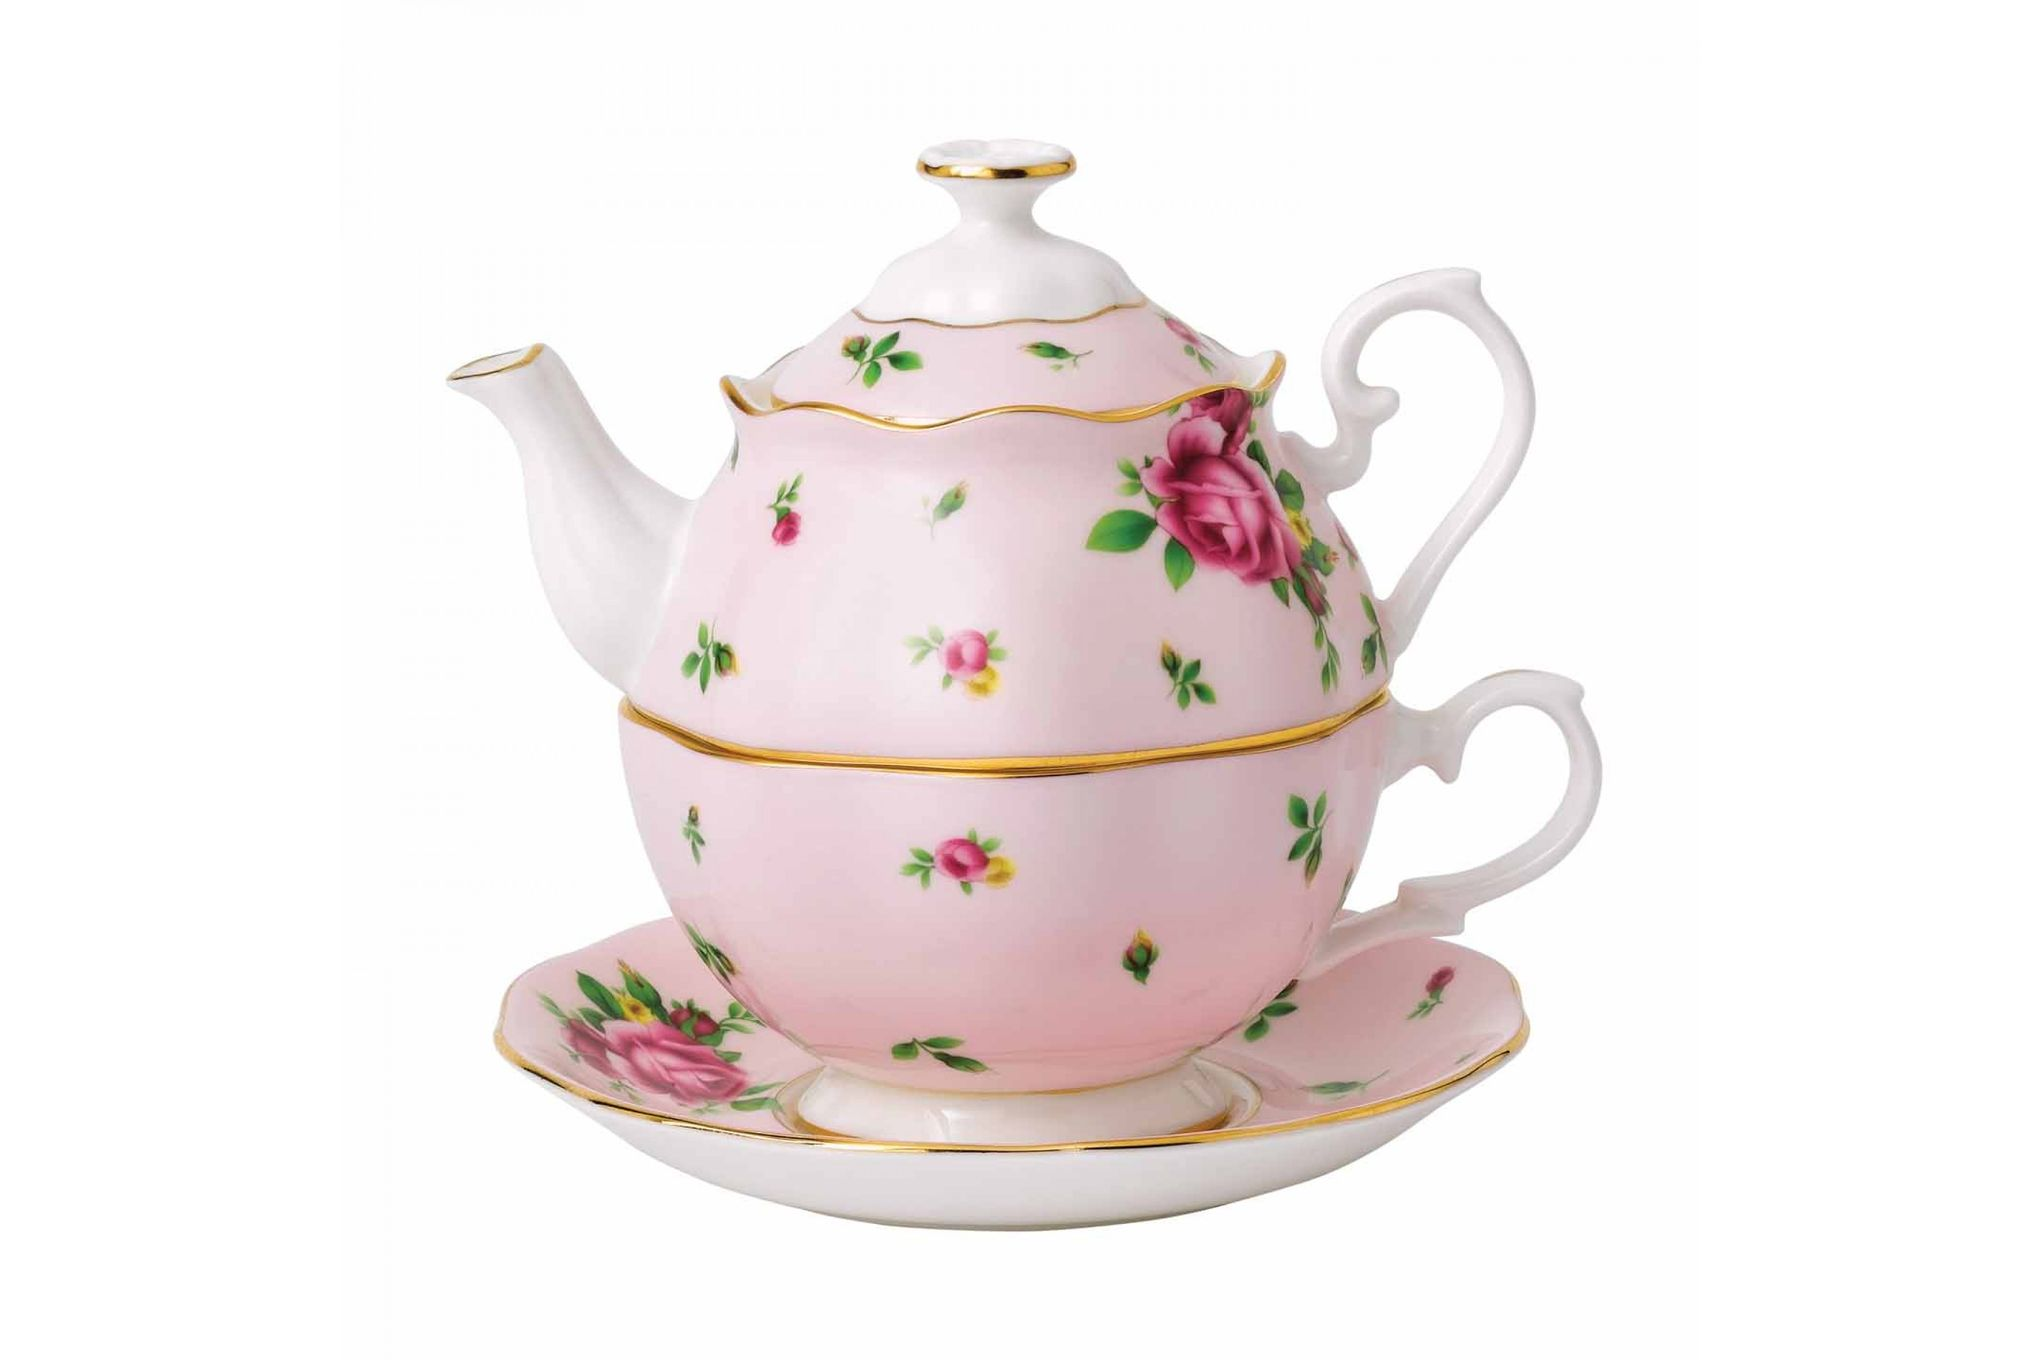 Royal Albert New Country Roses Pink Tea For One 0.49l thumb 1